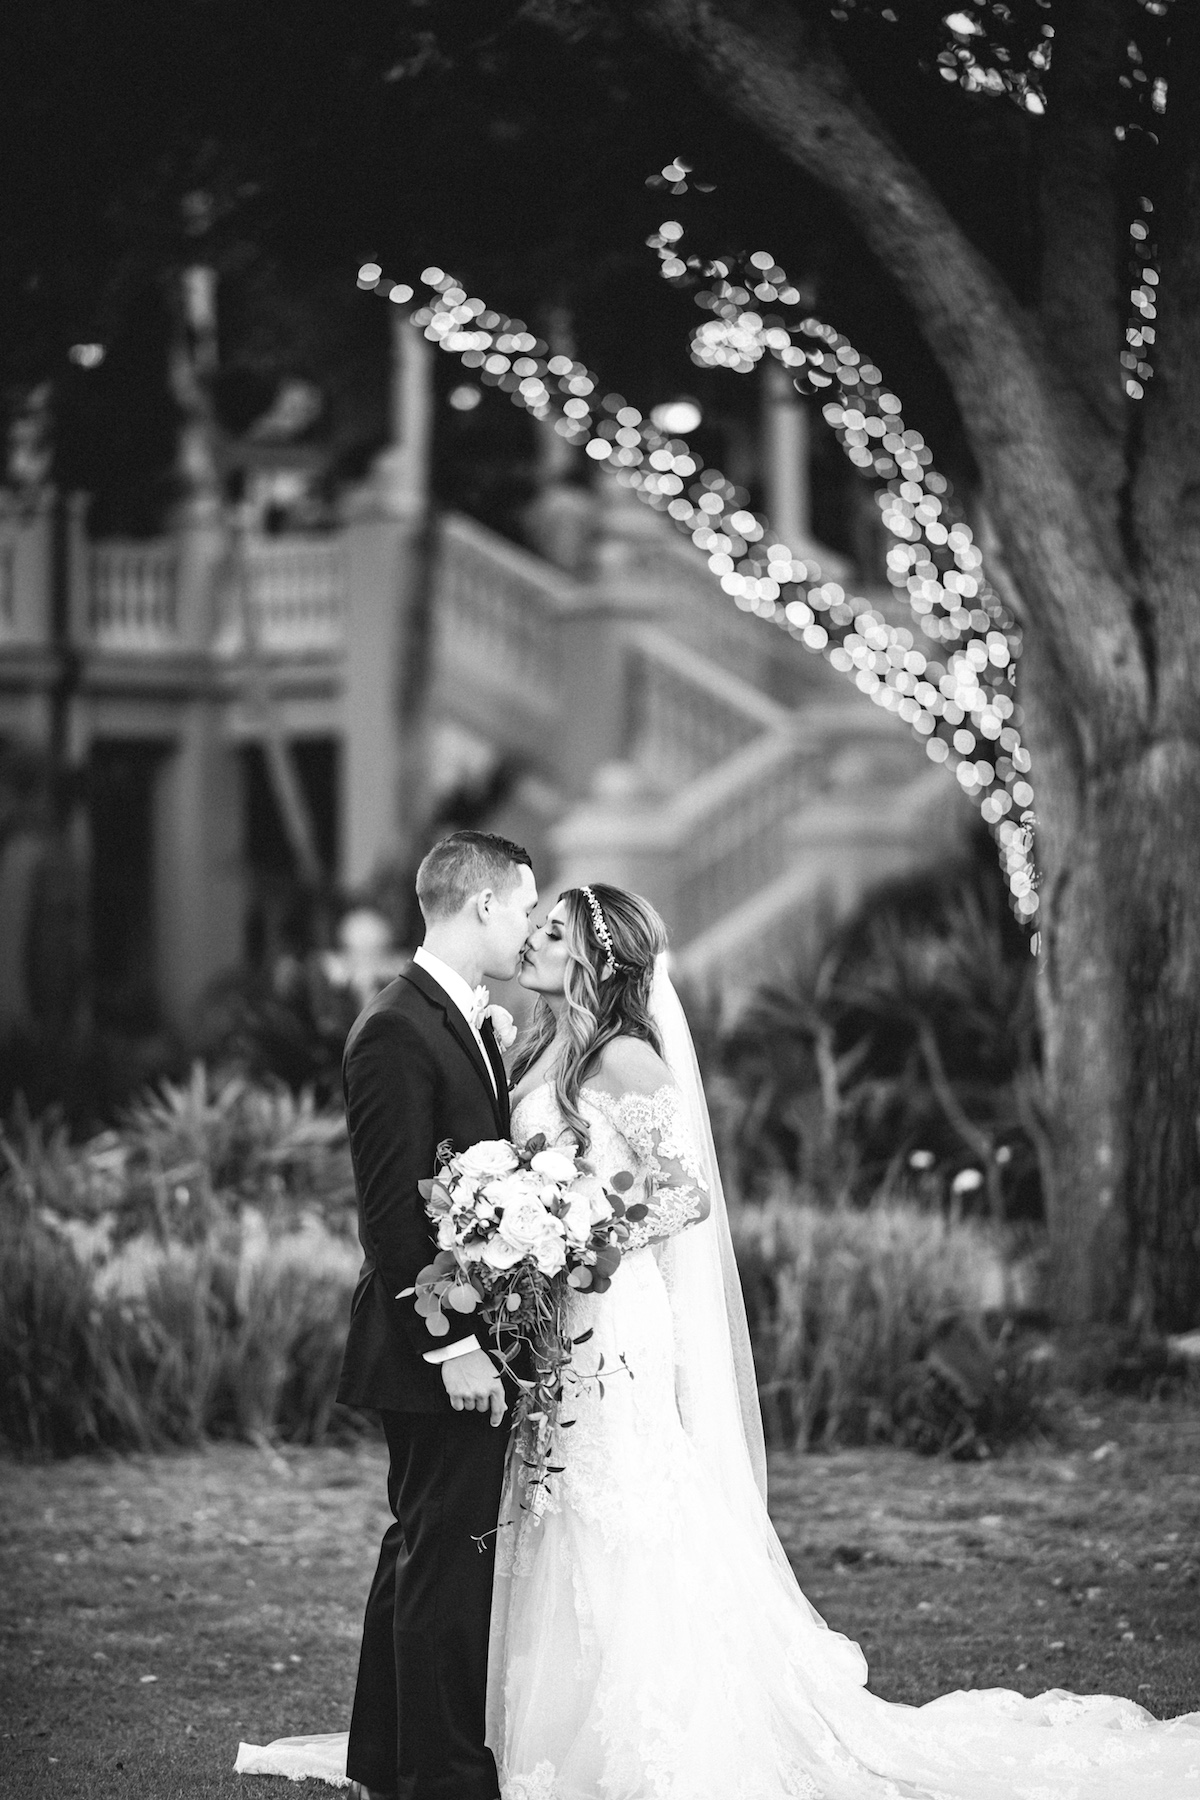 Epic Couples Portrait Newlyweds in Naples Florida wedding ceremony Matt Steeves.jpg